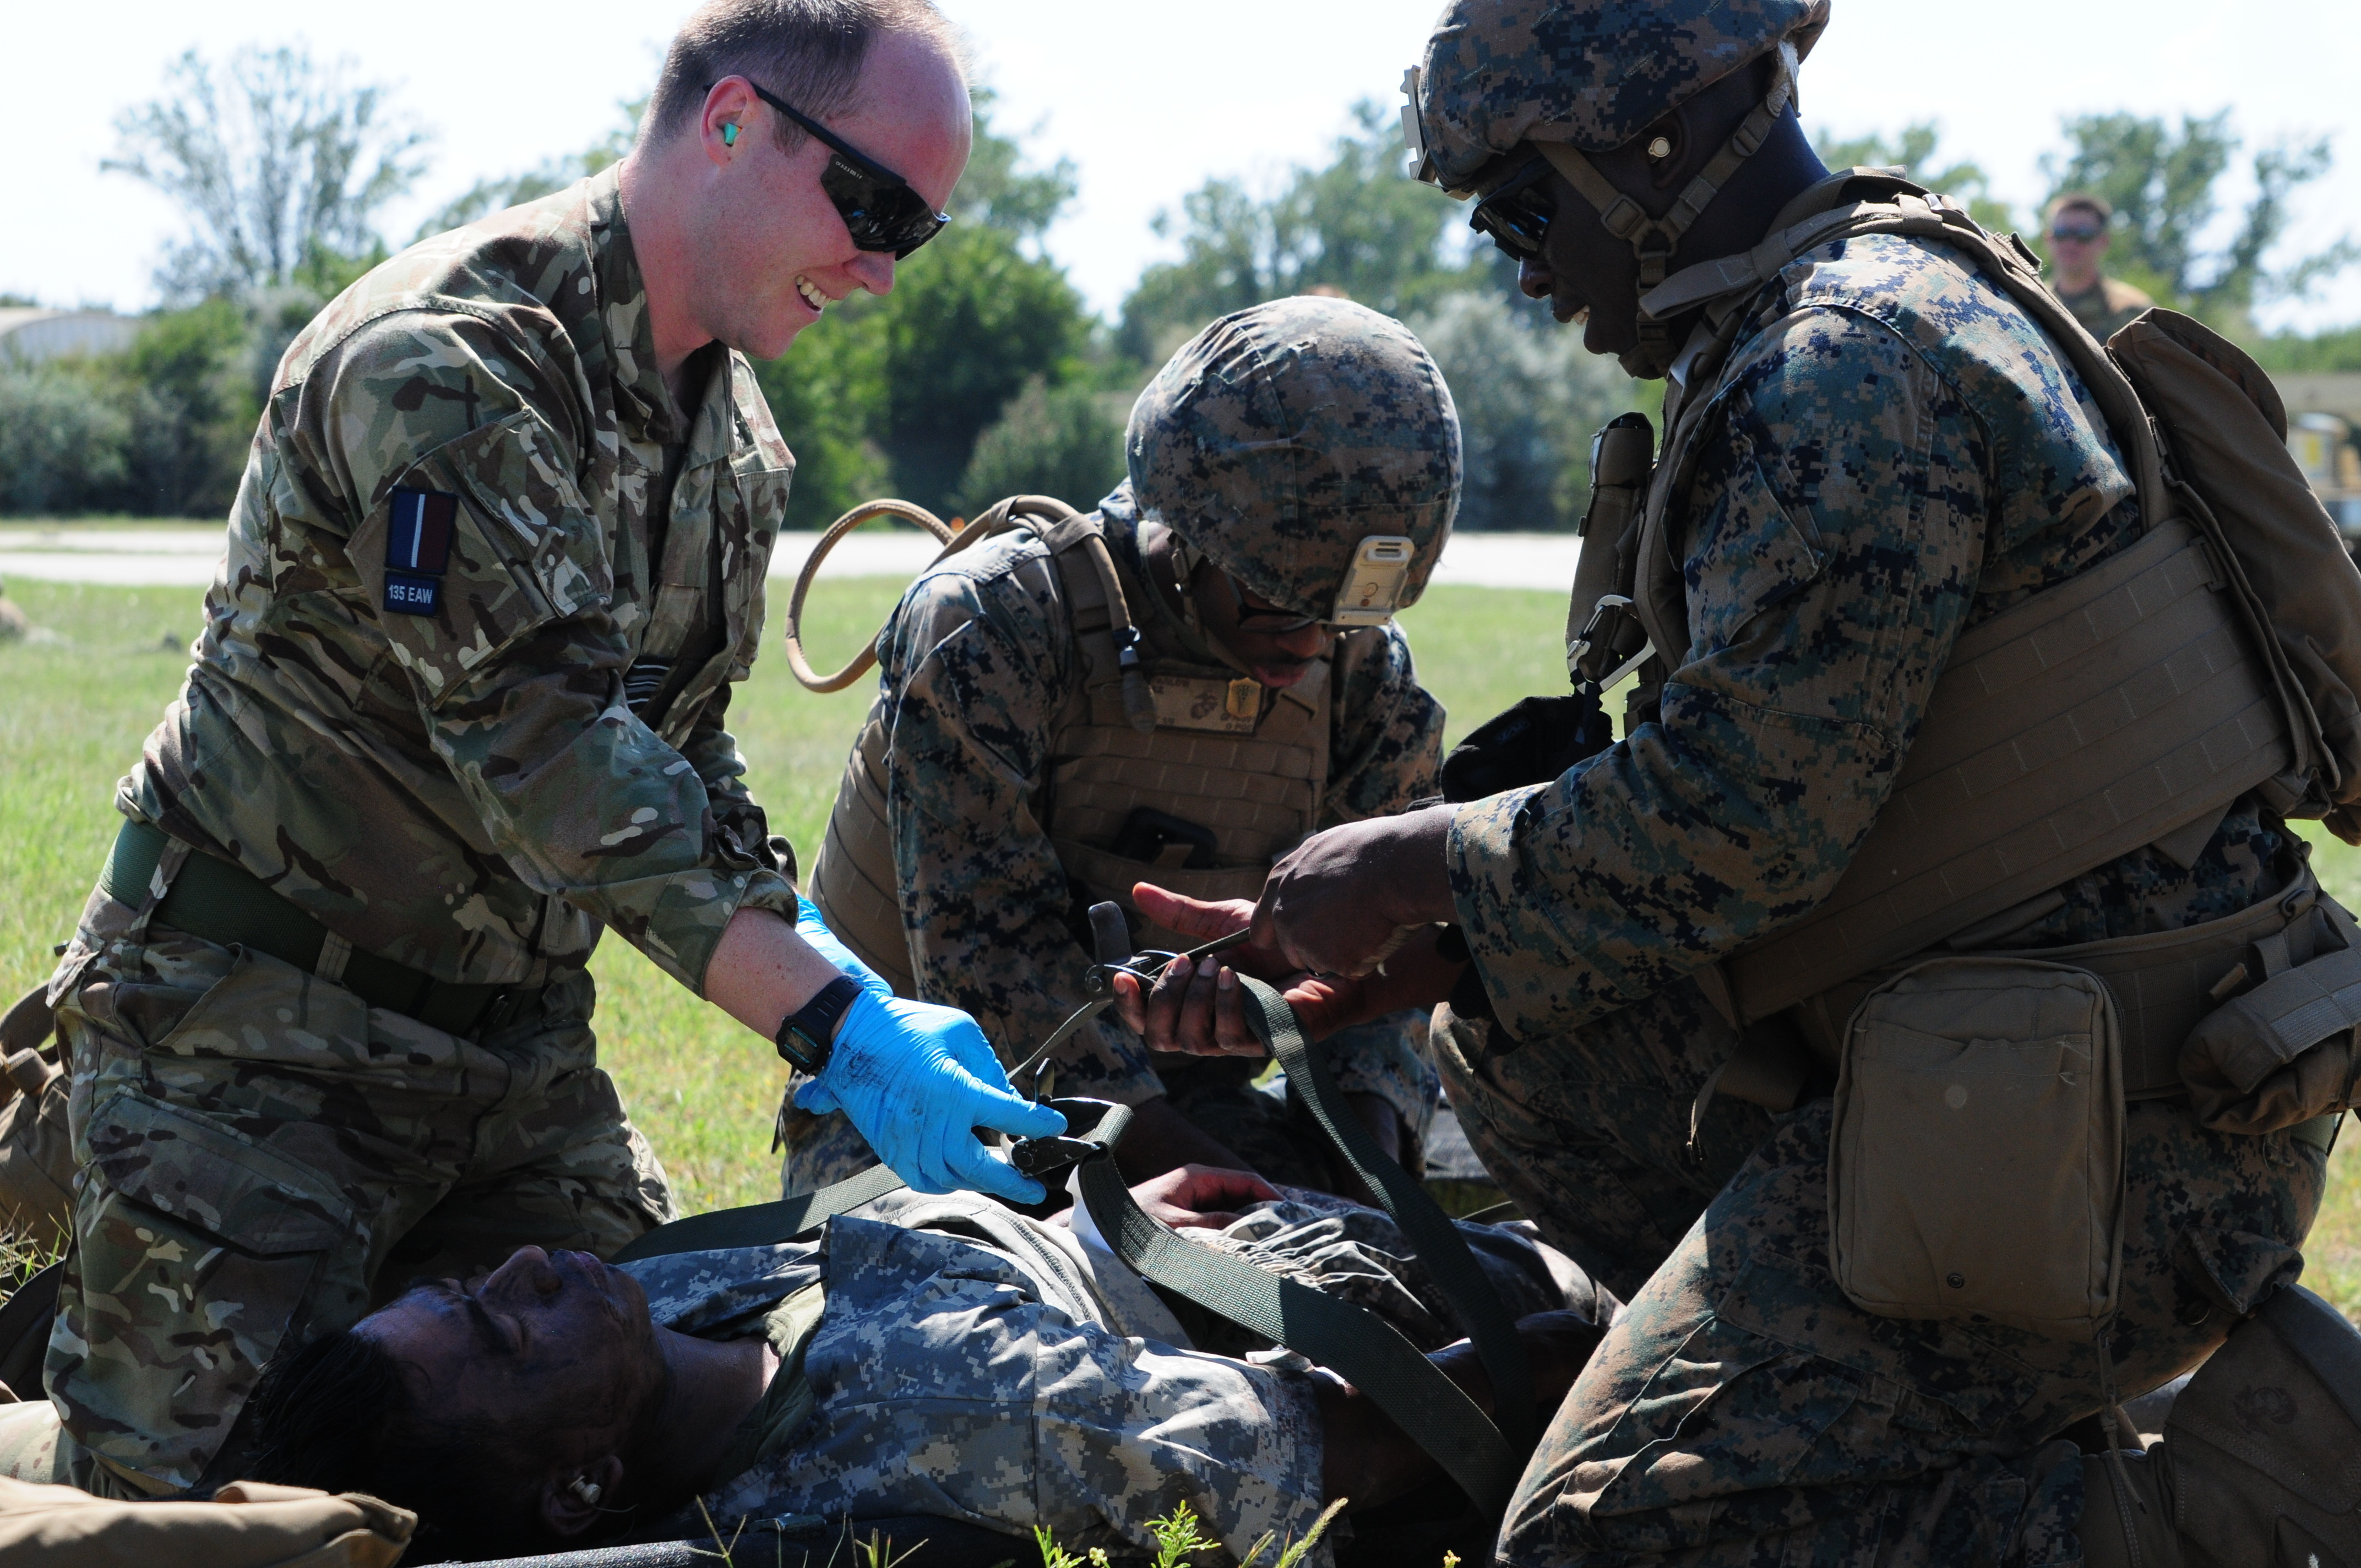 U.S. Marine and British medics quickly administer aid to simulated casualties and complete the 9-line medevac at Mihail Kogalniceanu Air Base in Romania, August 16, 2018. The U.S. Air Force, U.S. Marine Corps and British soldiers conducted Exercise Black Lion and Caduceus in support of Atlantic Resolve, an enduring training exercise between NATO and U.S. Forces.